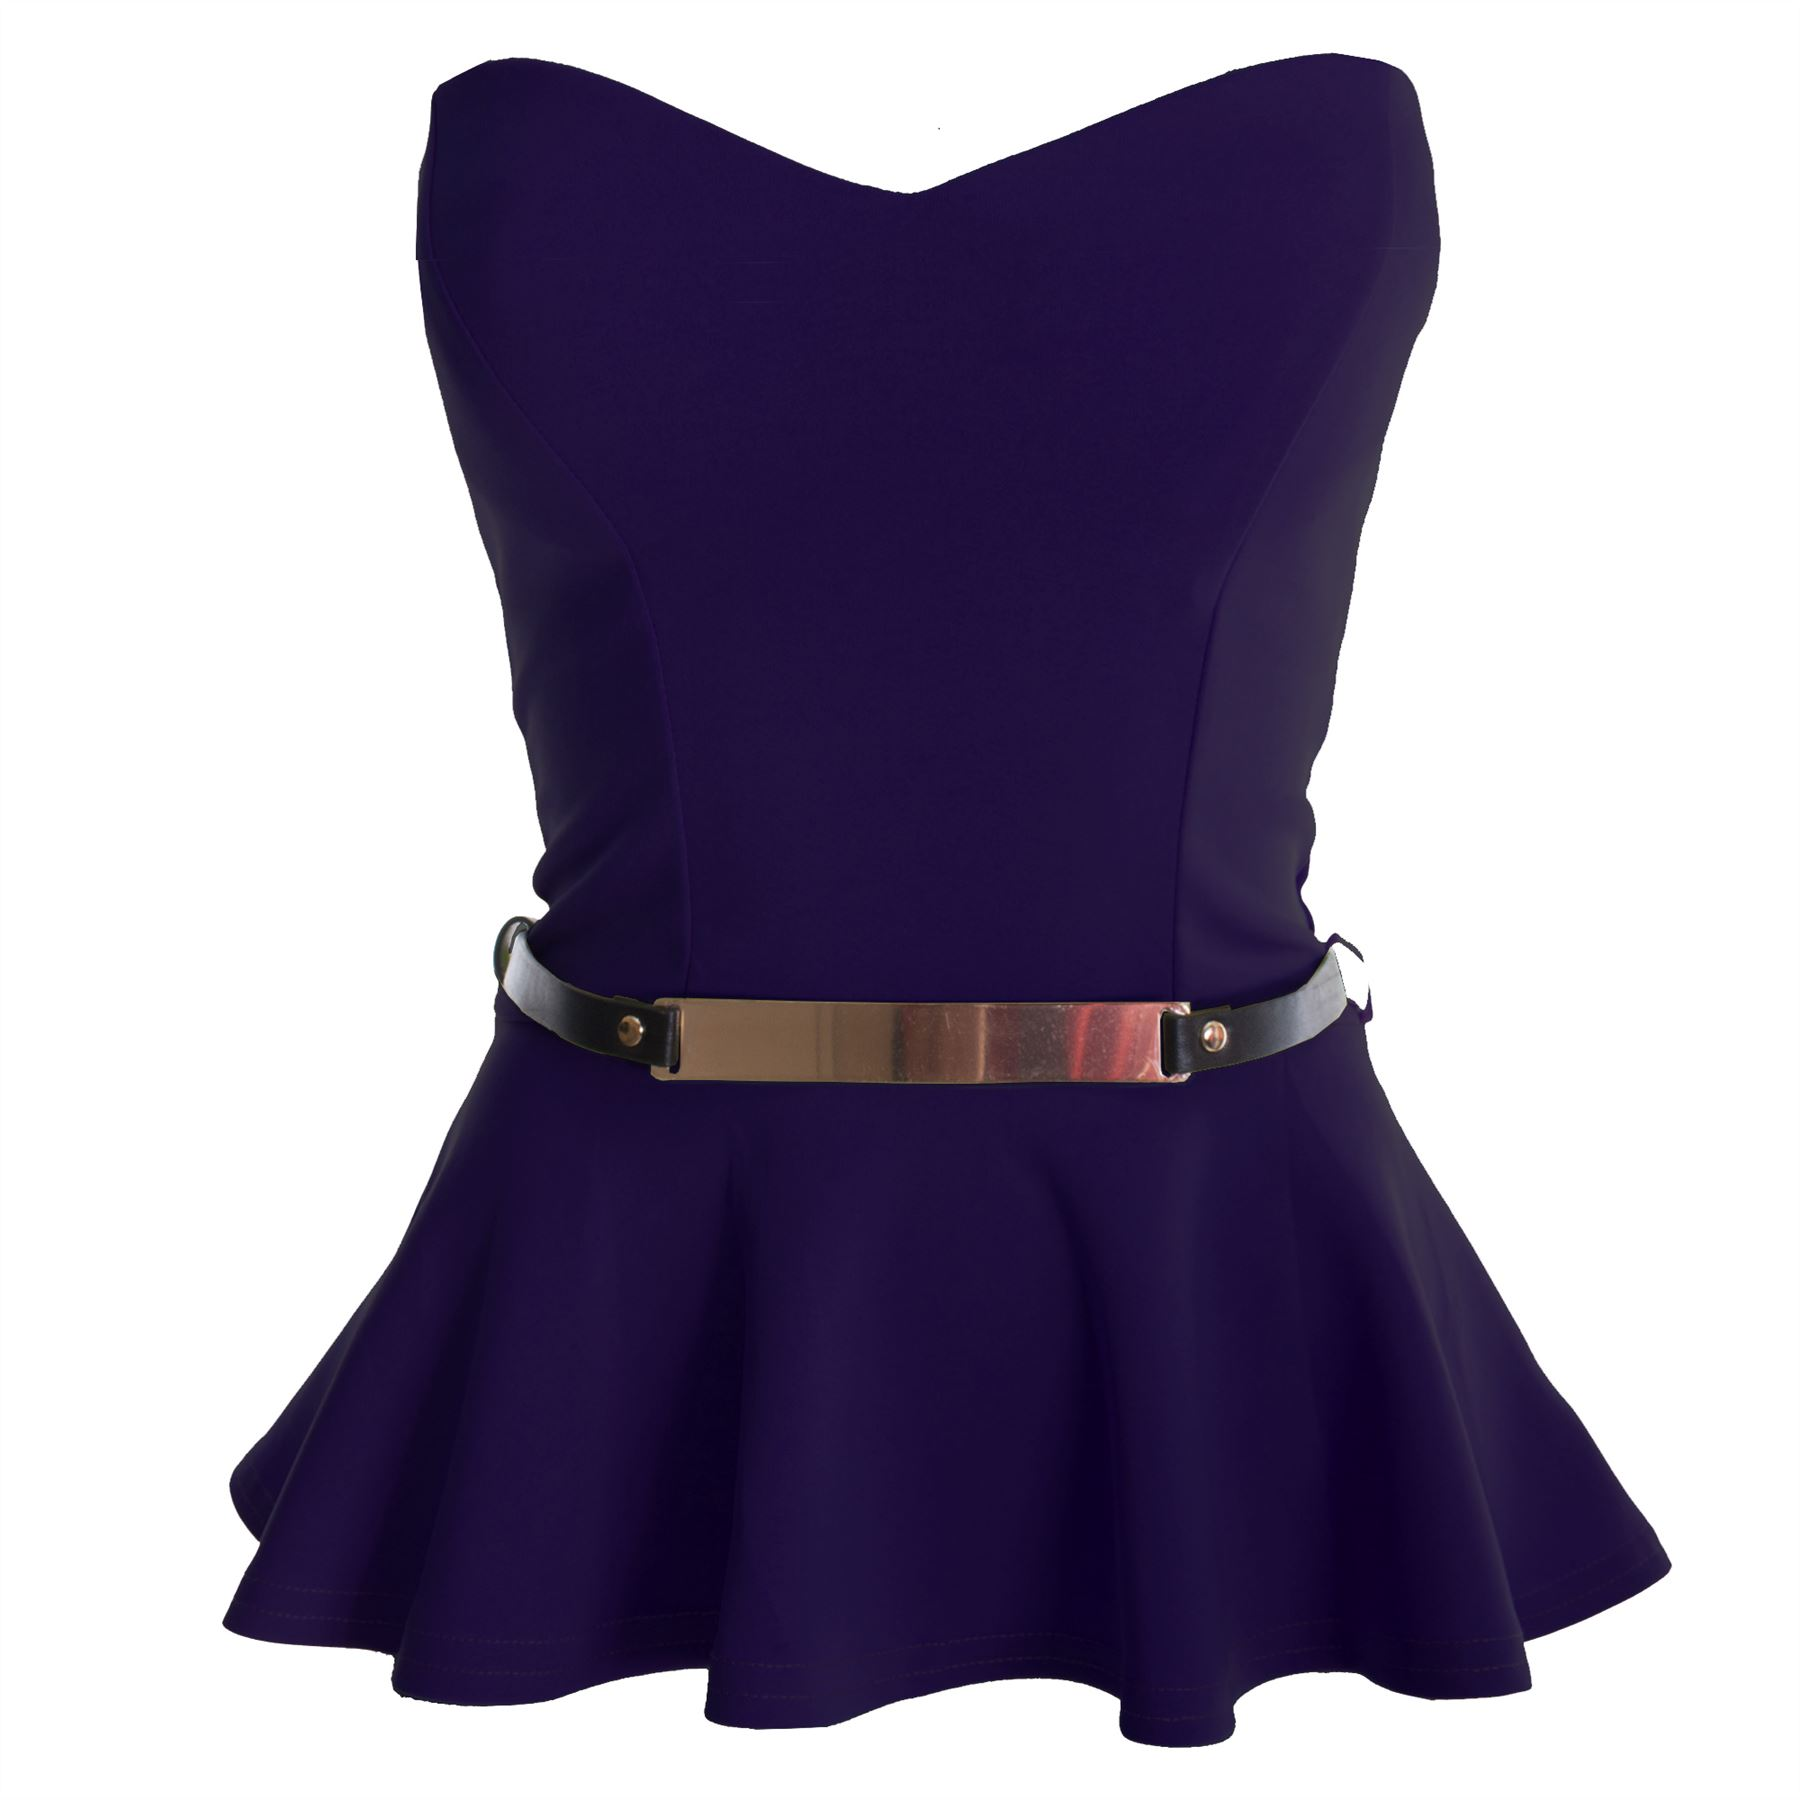 Enjoy free shipping and easy returns every day at Kohl's. Find great deals on Womens Peplum Tops Tops at Kohl's today!